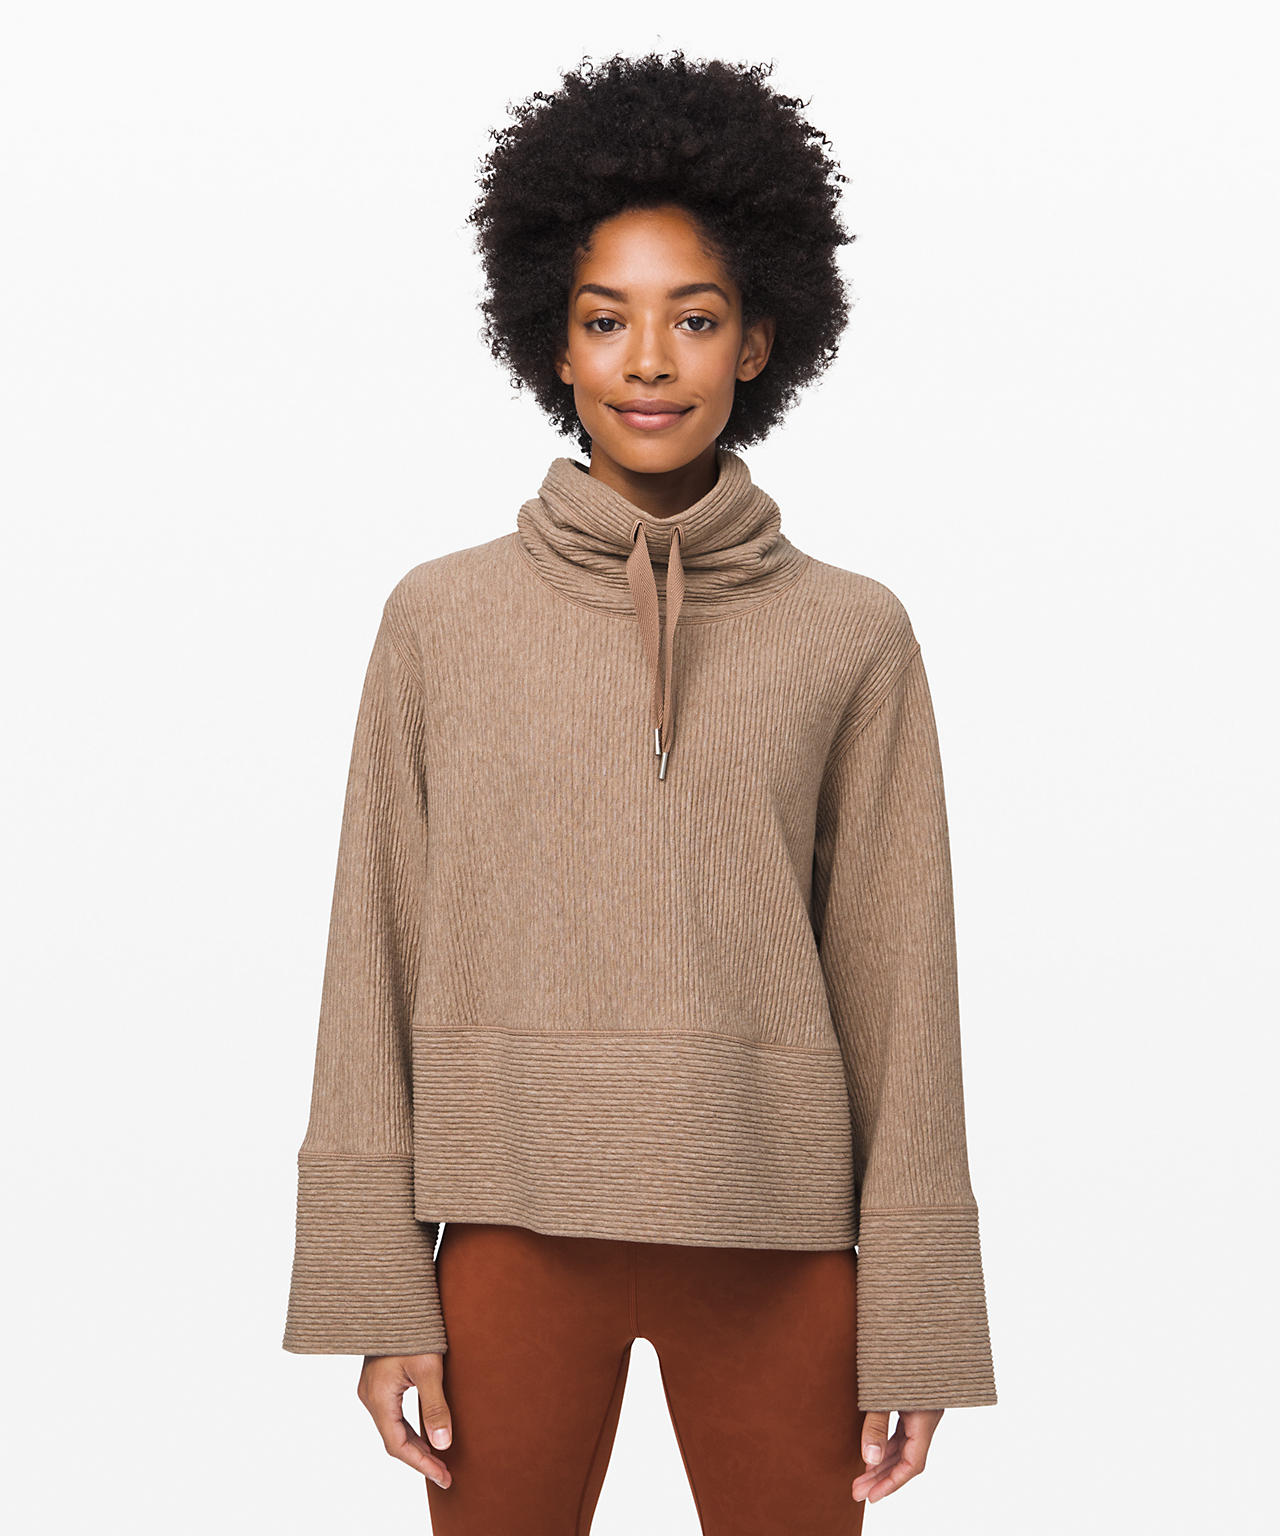 Retreat Yourself Pullover, Shop The Lululemon Upload